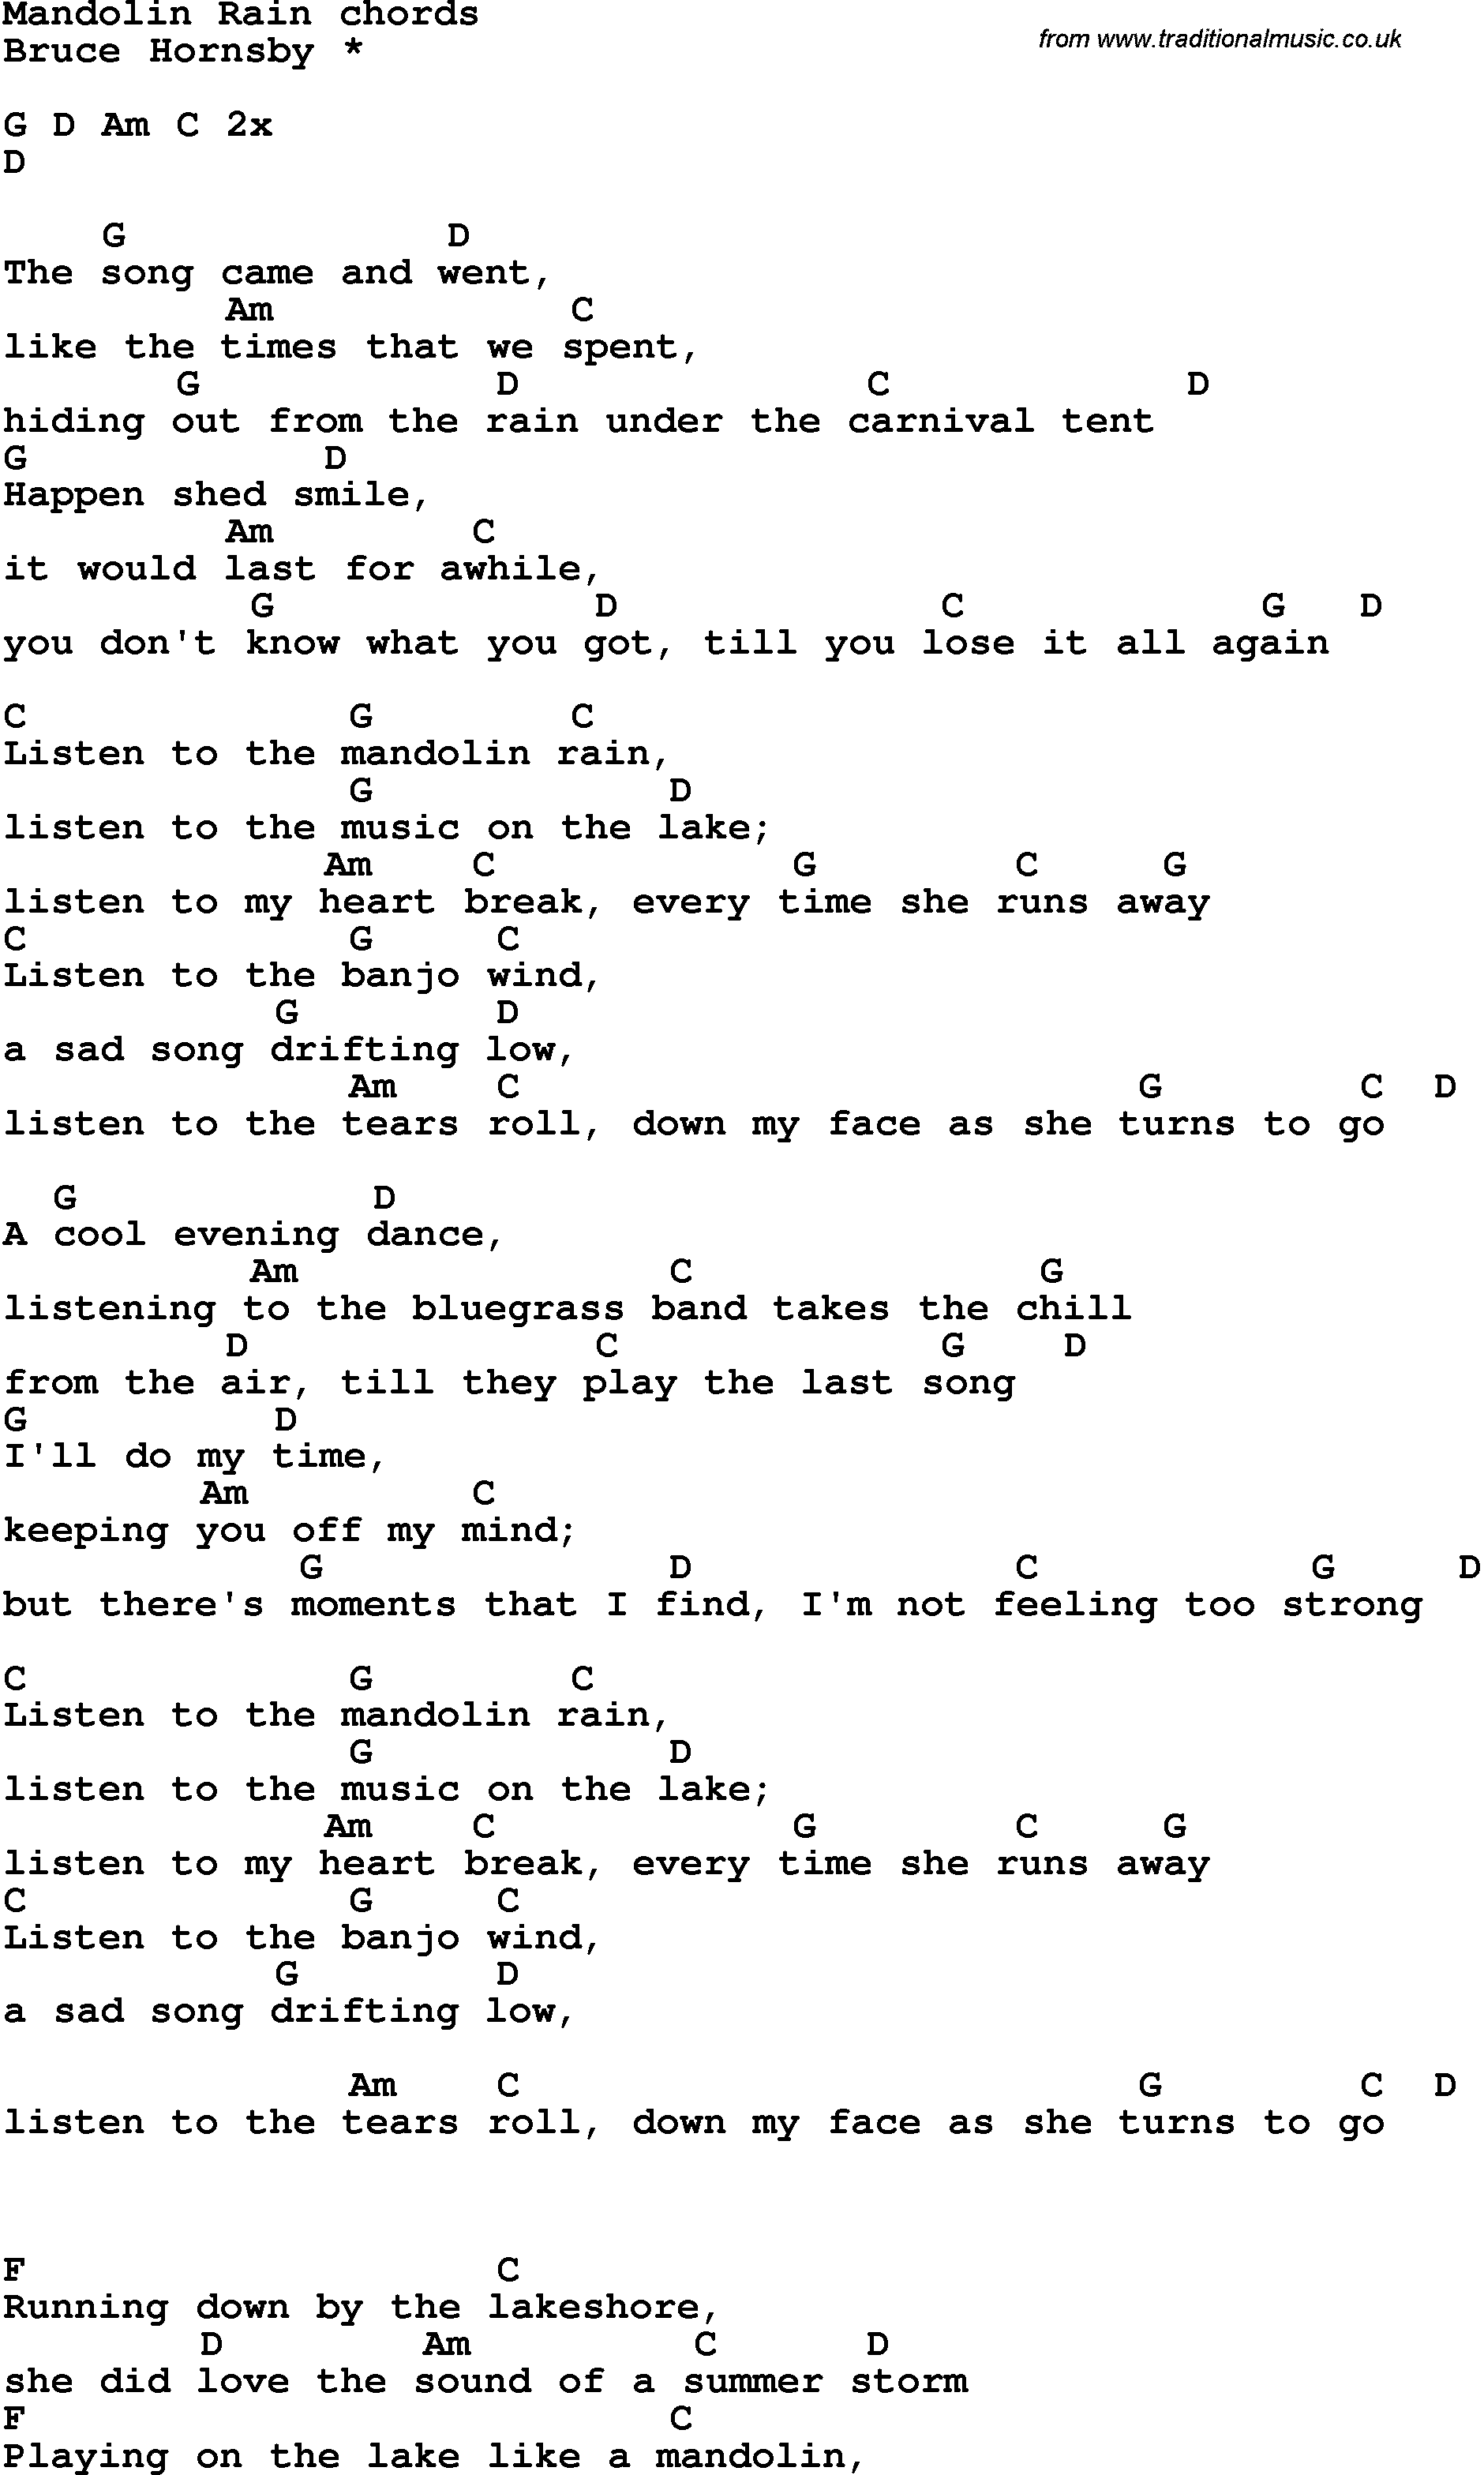 Song lyrics with guitar chords for Mandolin Rain